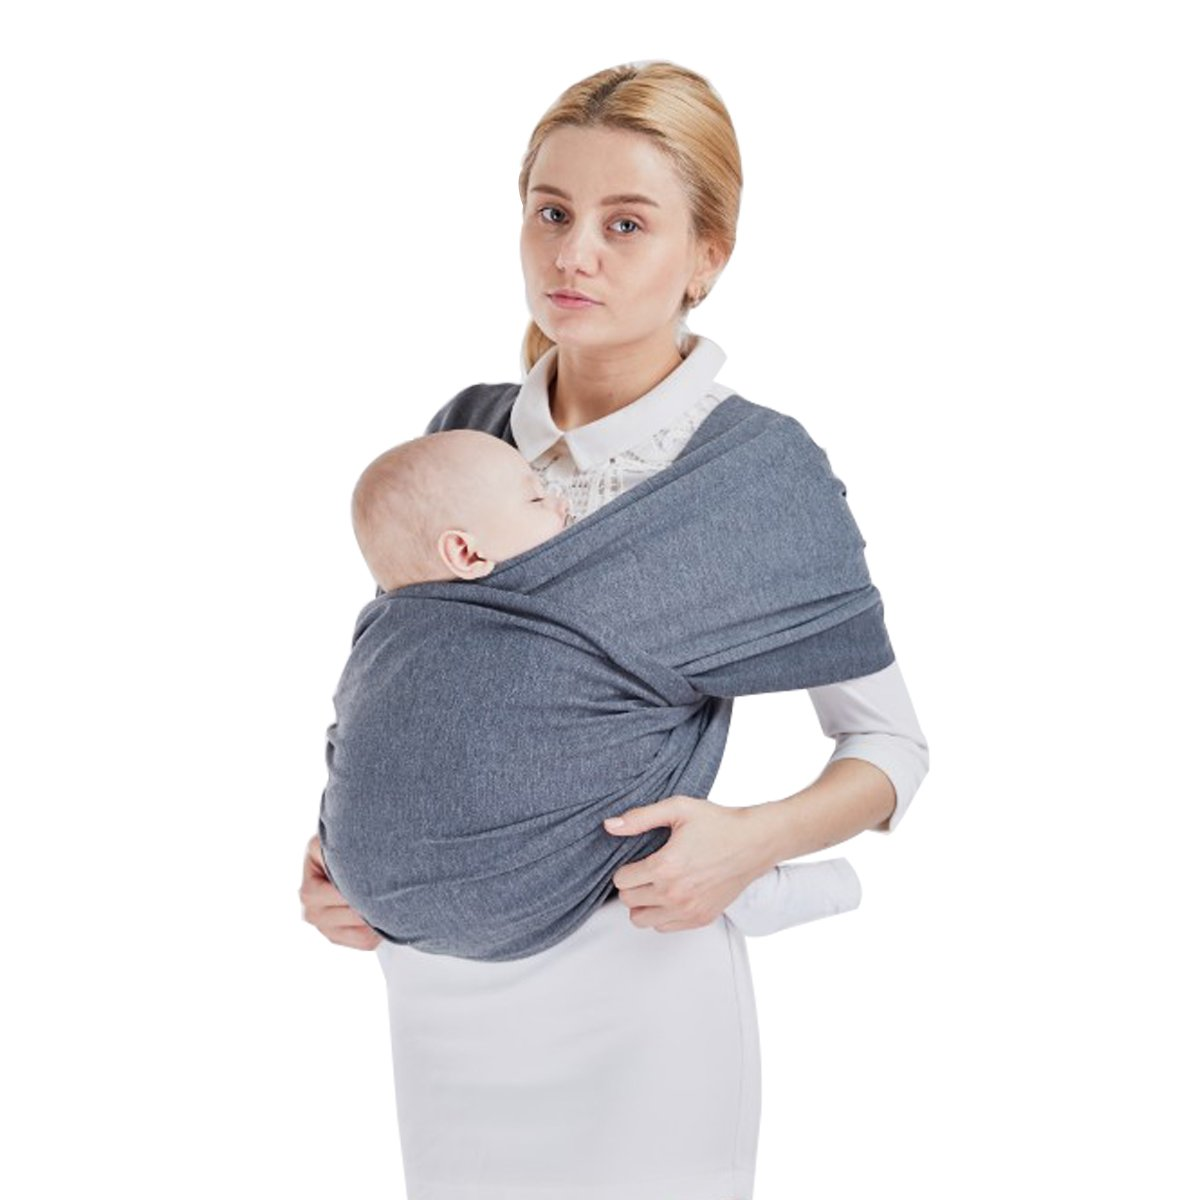 Baby Wrap Carrier, Baby Sling up to 40 lbs, Organic Cotton Liberty Slings Wrap Sleepy for Toddler(Dark gray) ASANDH